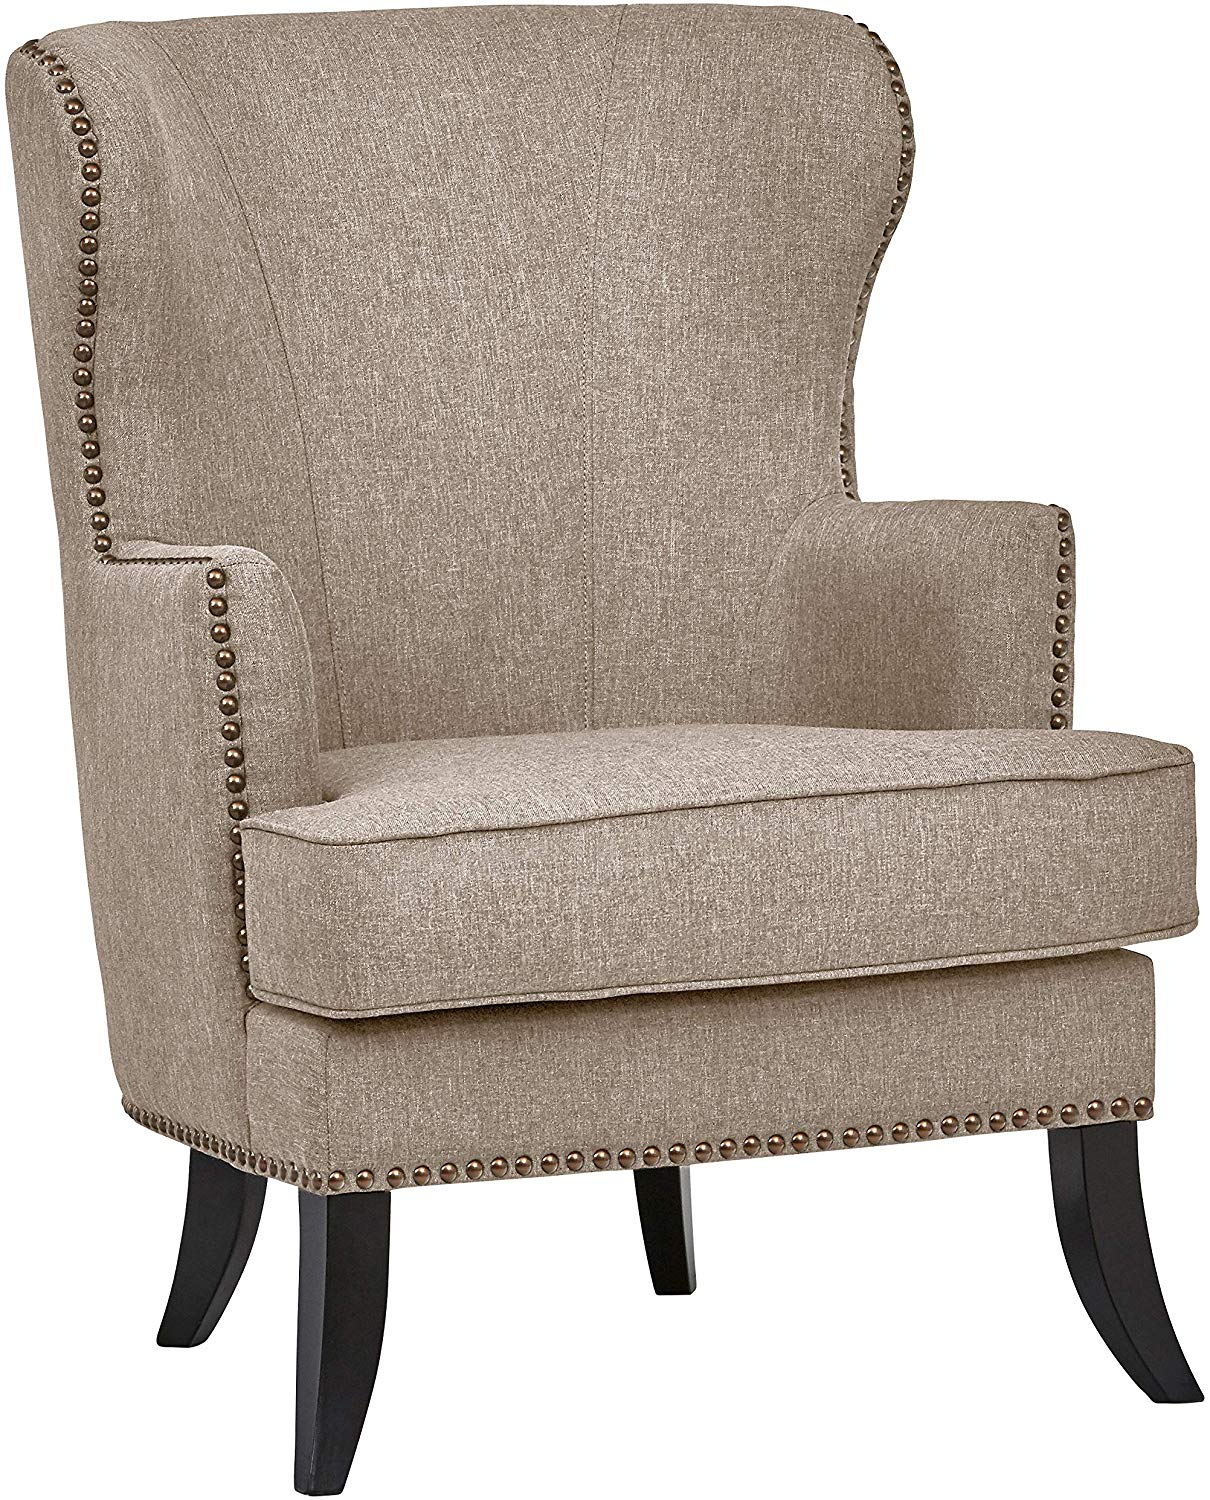 Ravenna Home Valmay Wingback Nailhead Trim Accent Chair